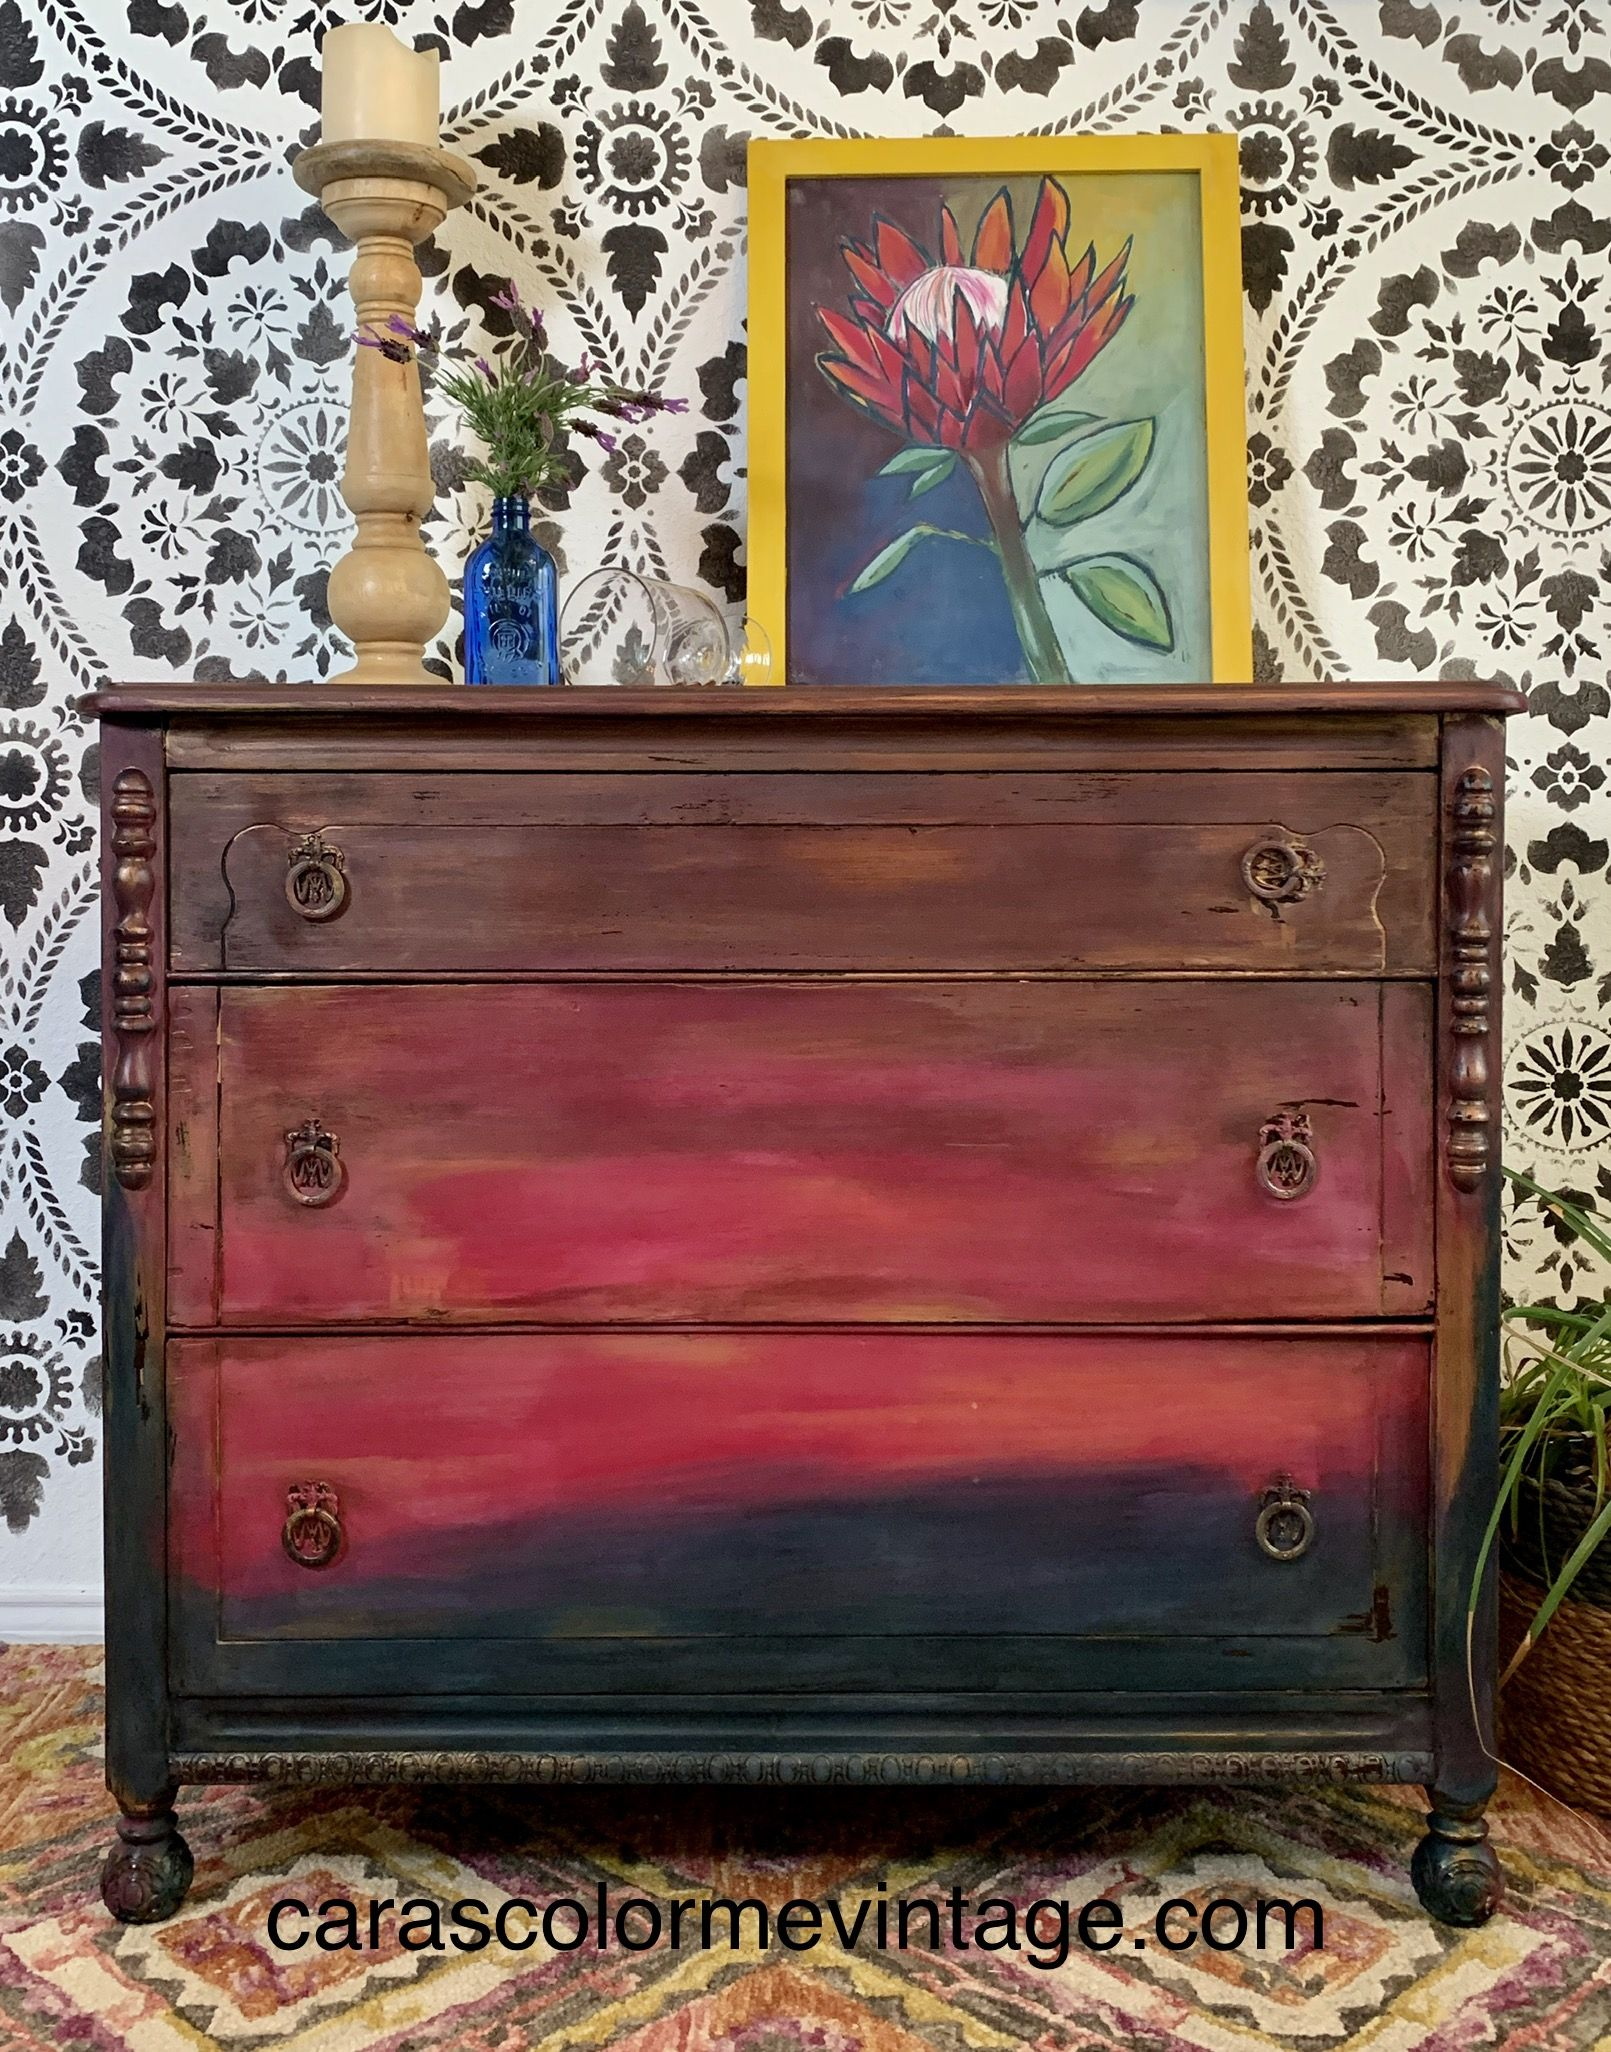 Hand painted Bohemian Fire dresser! This red and pink dresser is a DIY masterpiece. Perfect way to spruce up your home with some color and joy. DIY paint transforms this vintage dresser into a chic statement piece. #boho #bohemian #dresser #furniturerestoration #paintedfurniture #vintage #dresserforgirls #blending #sunset #pretty #stylish